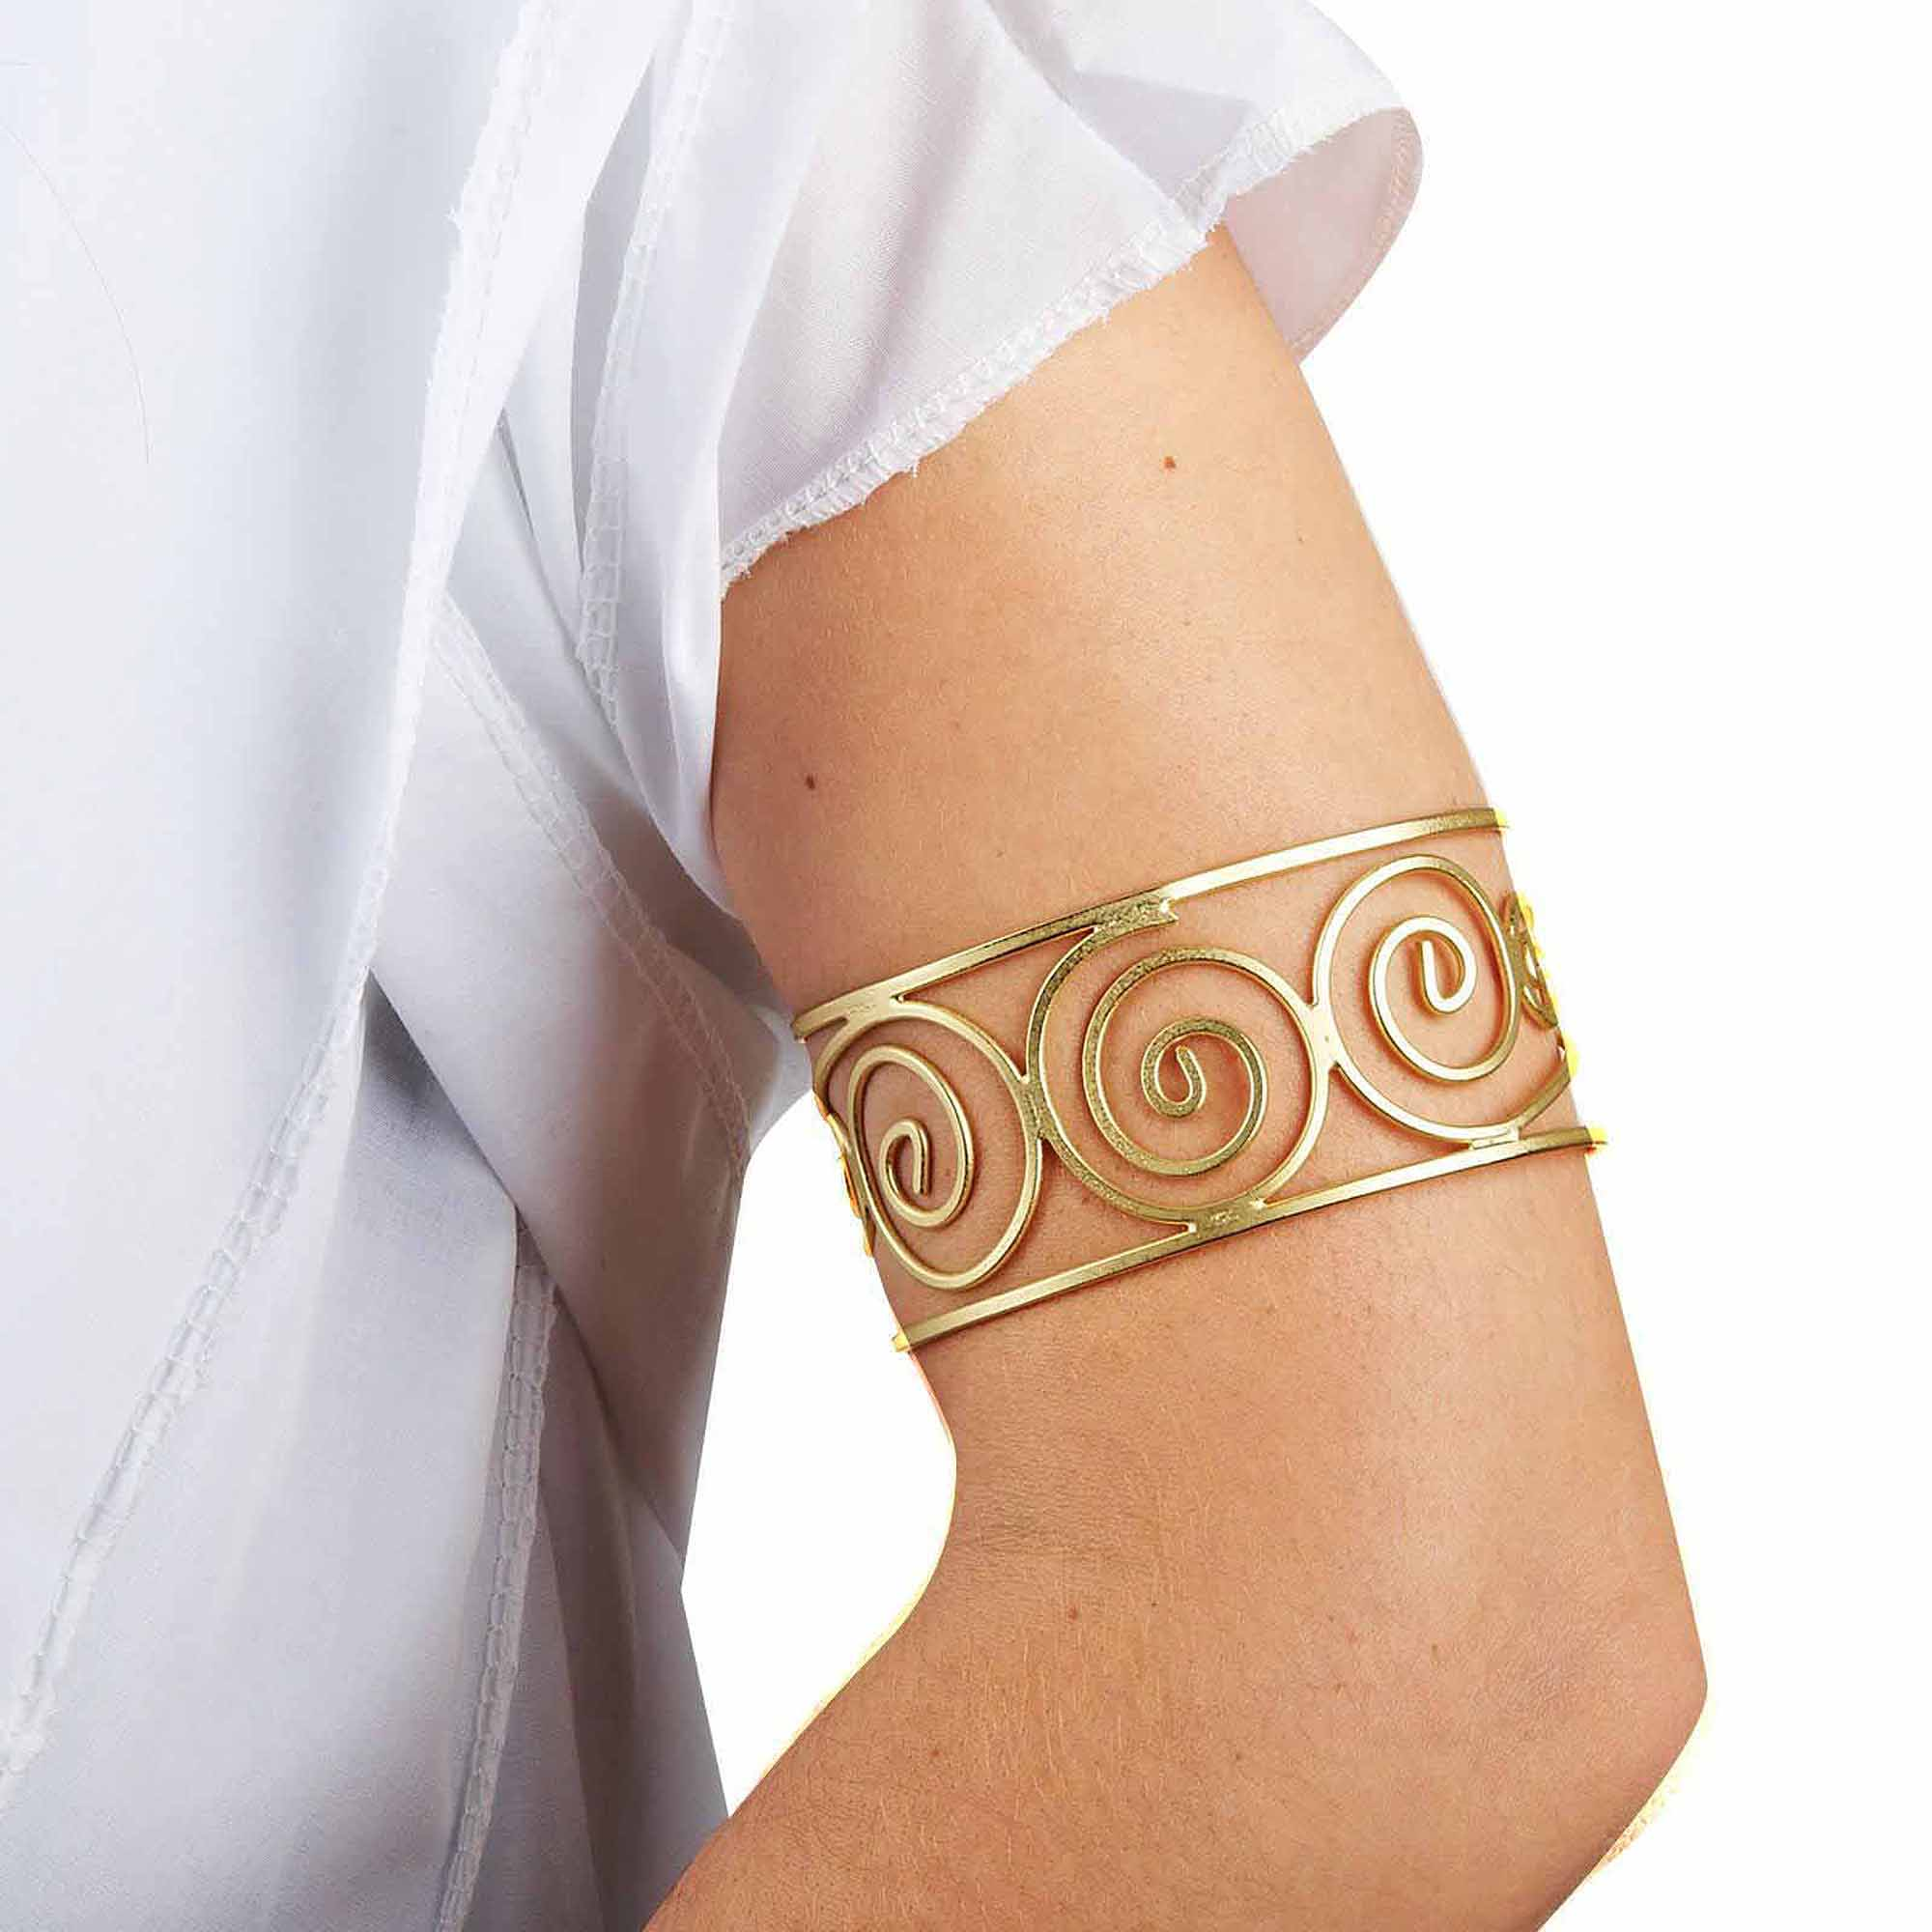 Grecian Arm Cuff Halloween Costume Accessory